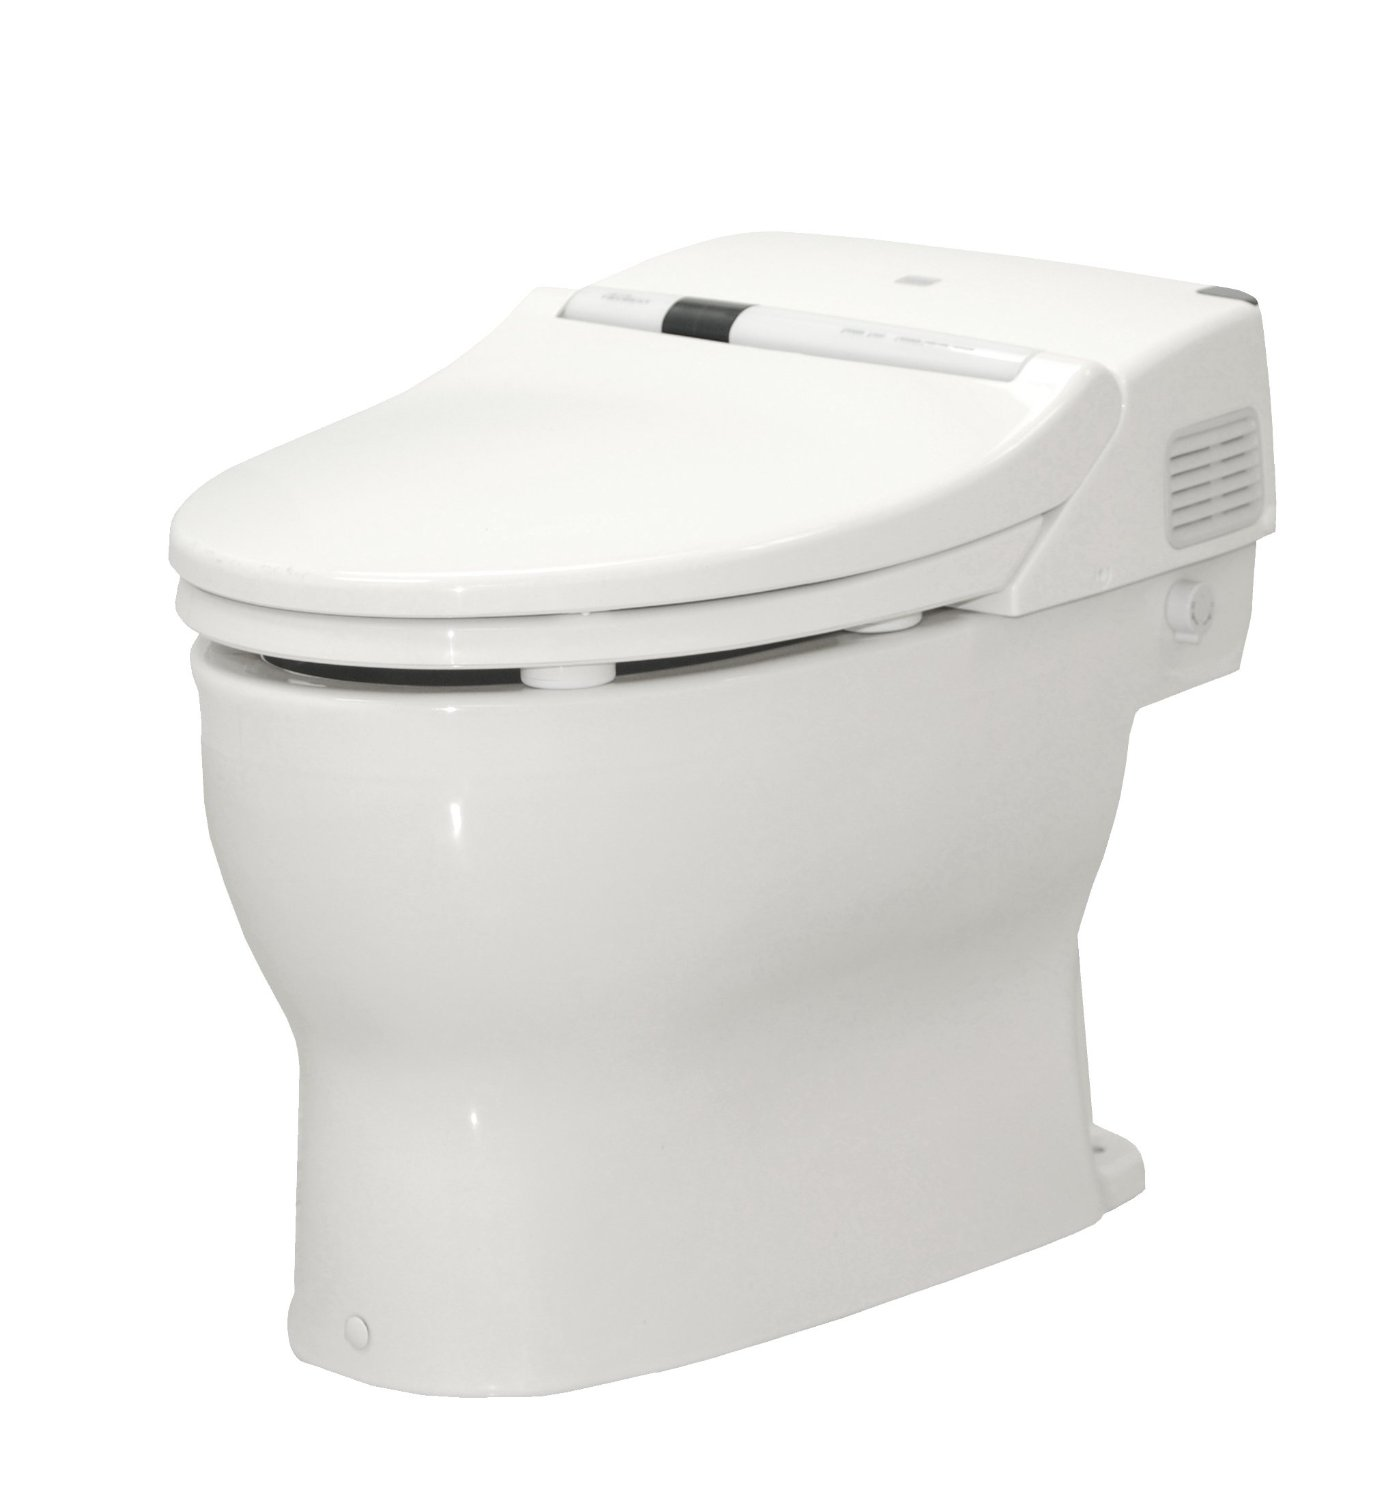 Neorest 500h Toilet Review